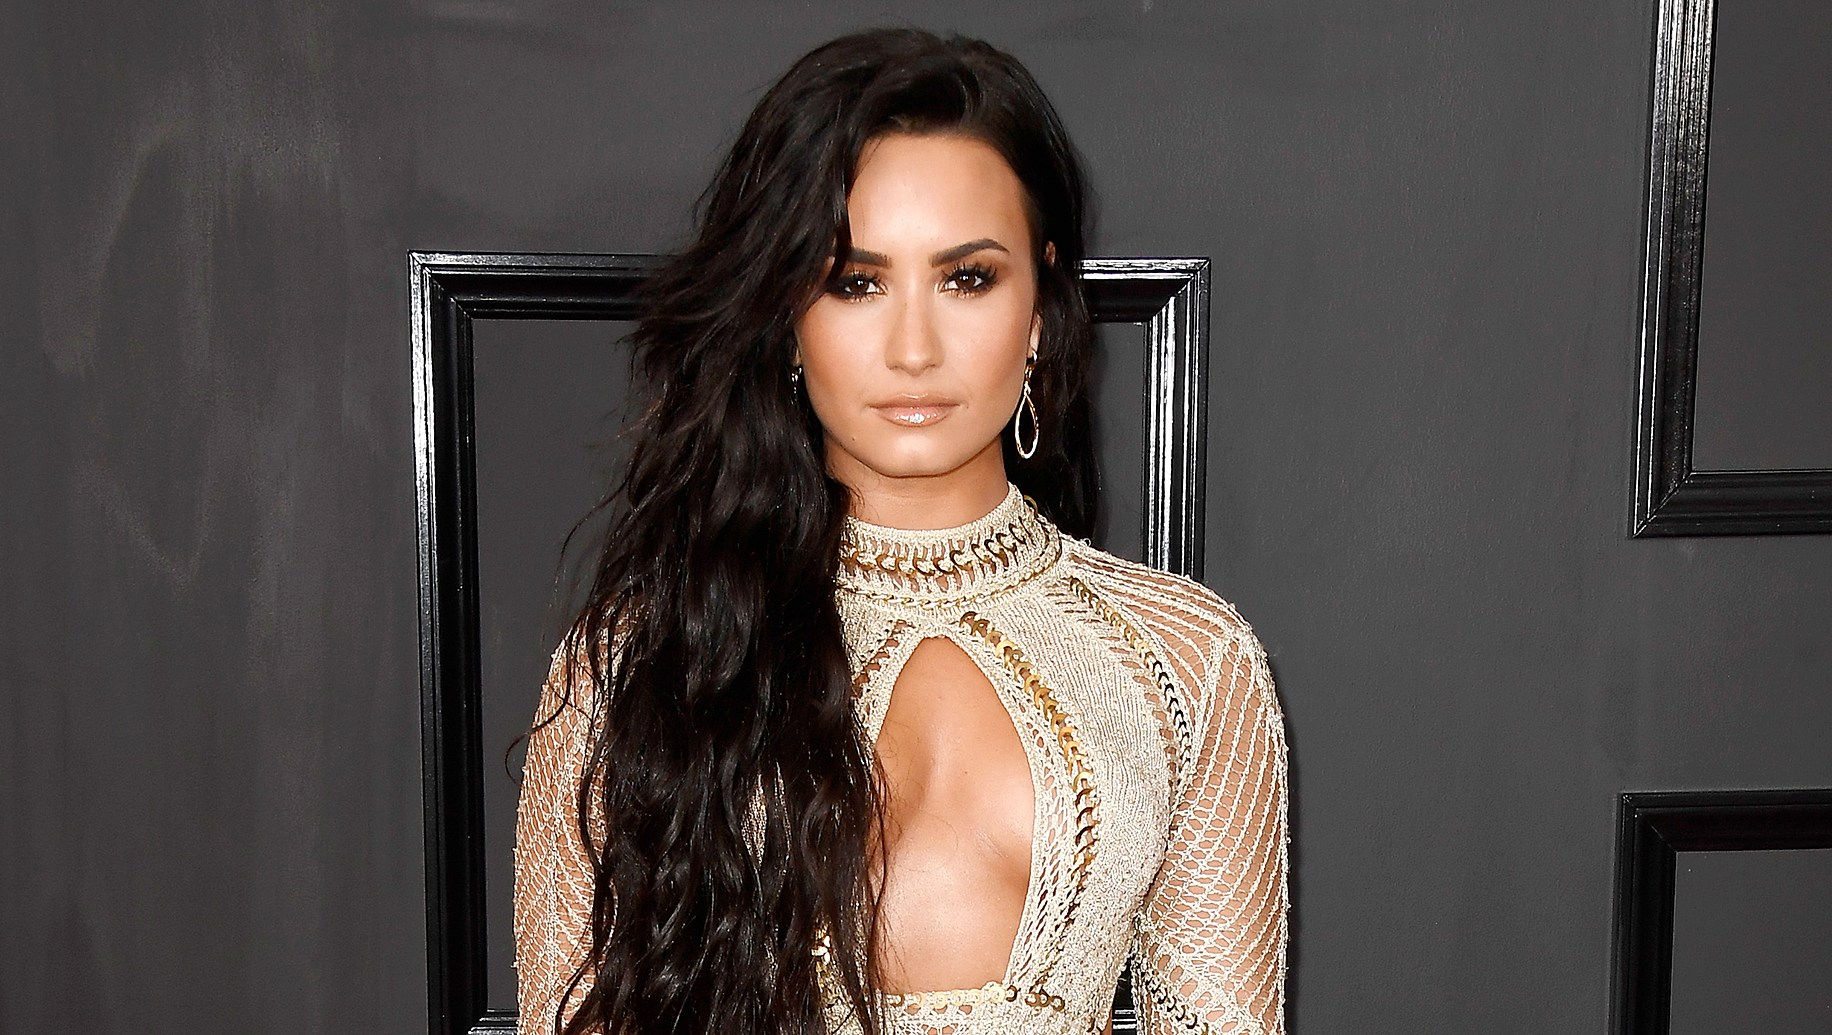 Demi Lovato Cancels Mexican South American Tour Dates After Overdose